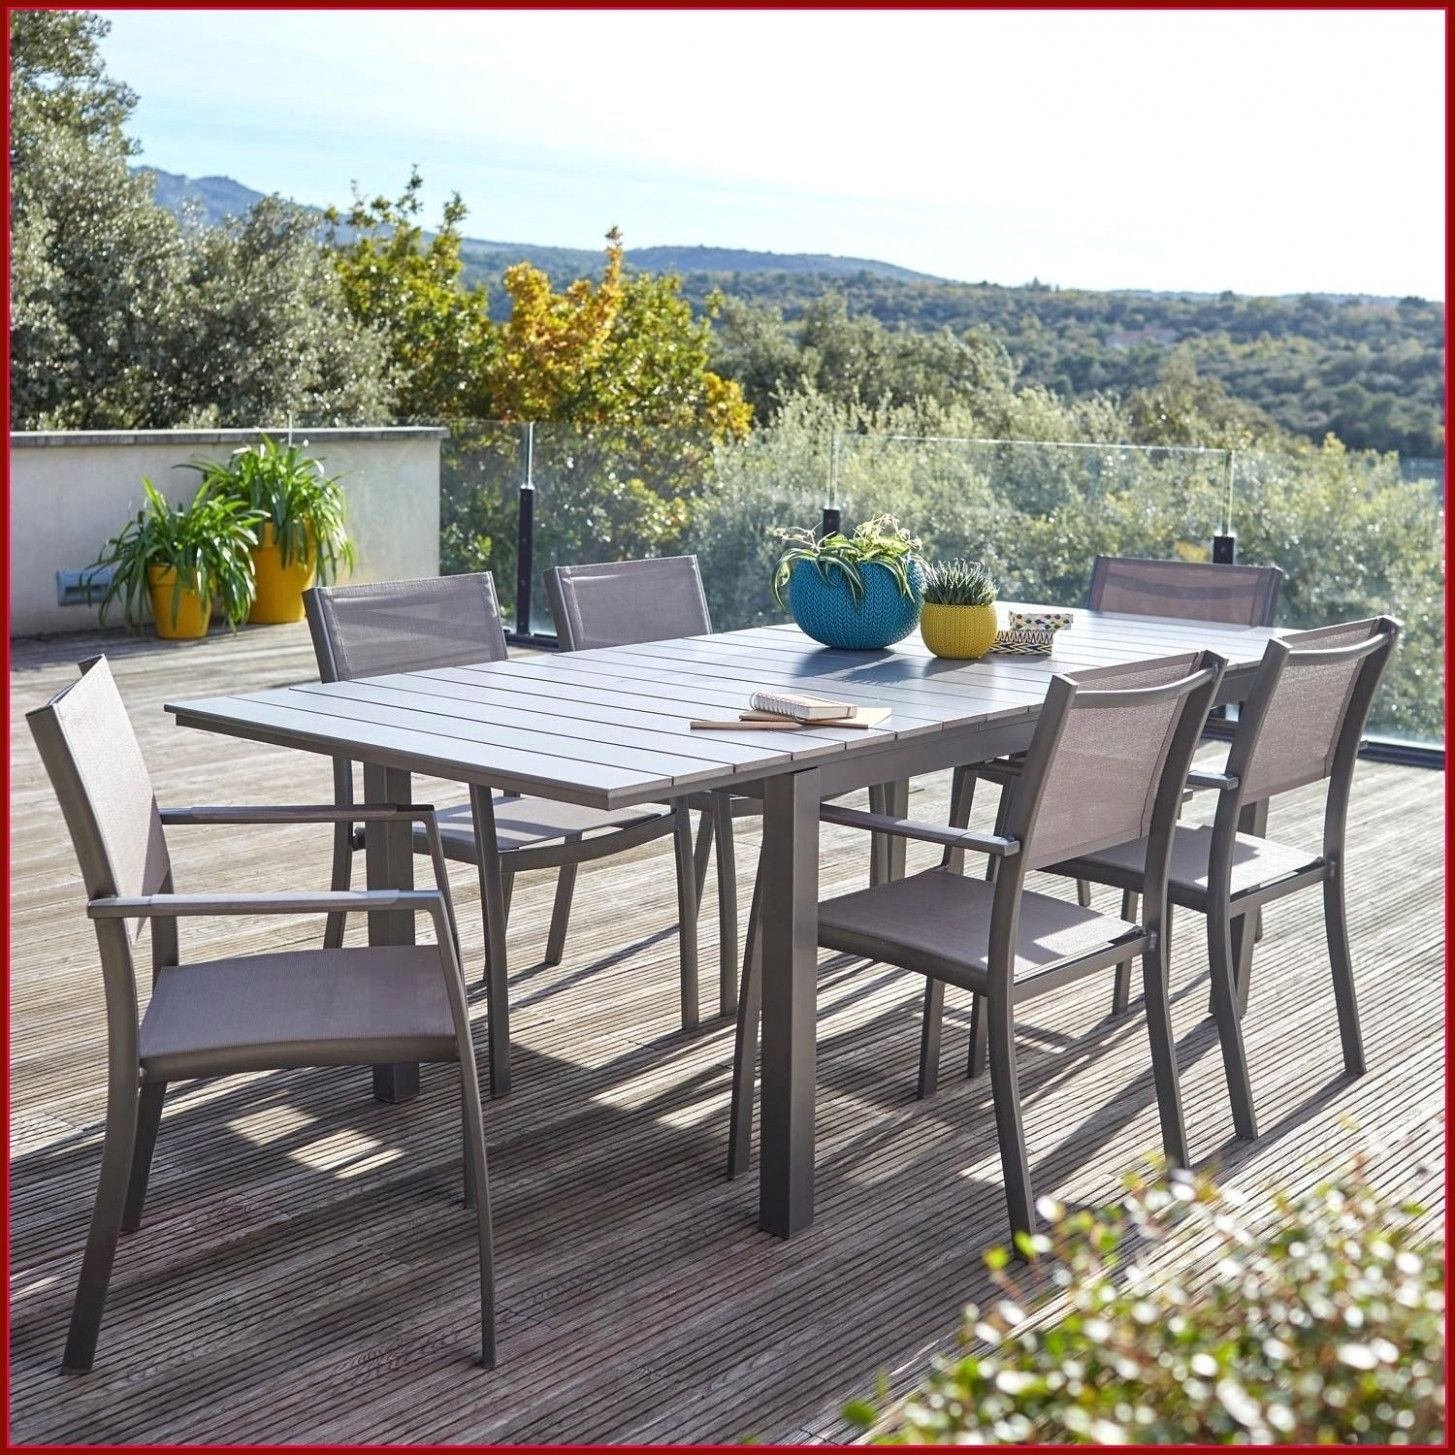 Salon De Jardin Super Outdoor Outdoor Furniture Sets Outdoor Decor